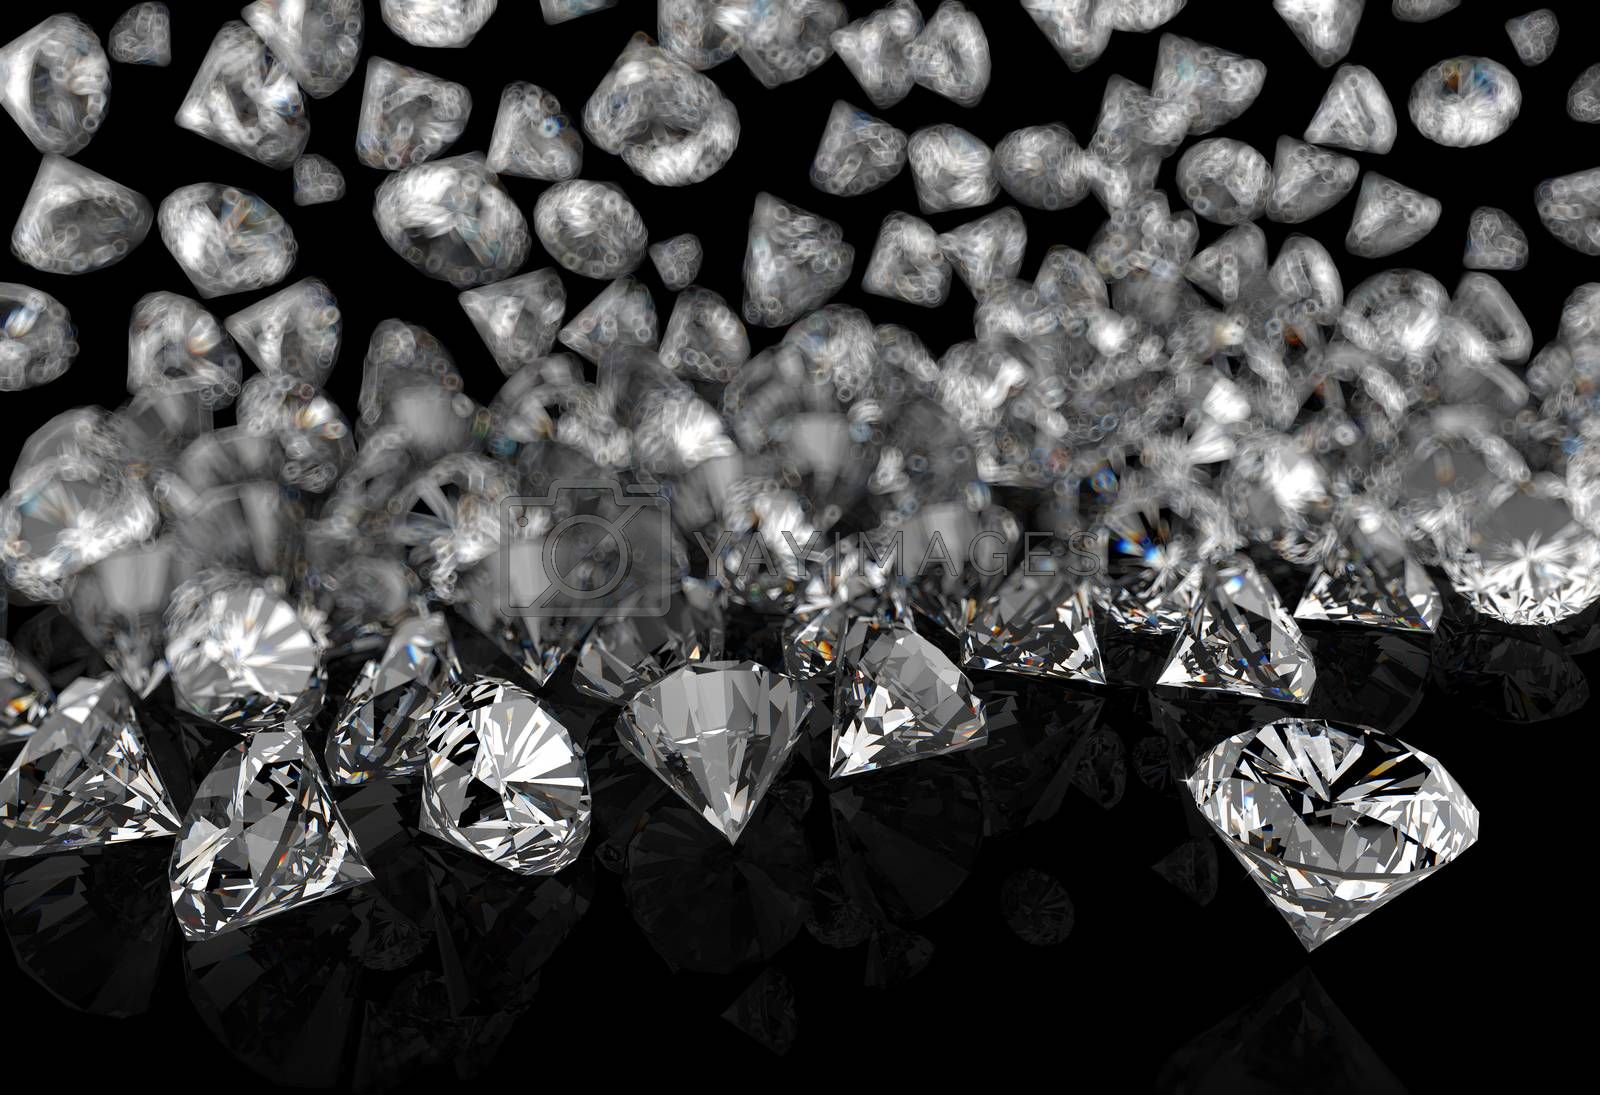 Royalty free image of diamonds on black surface by everythingpossible